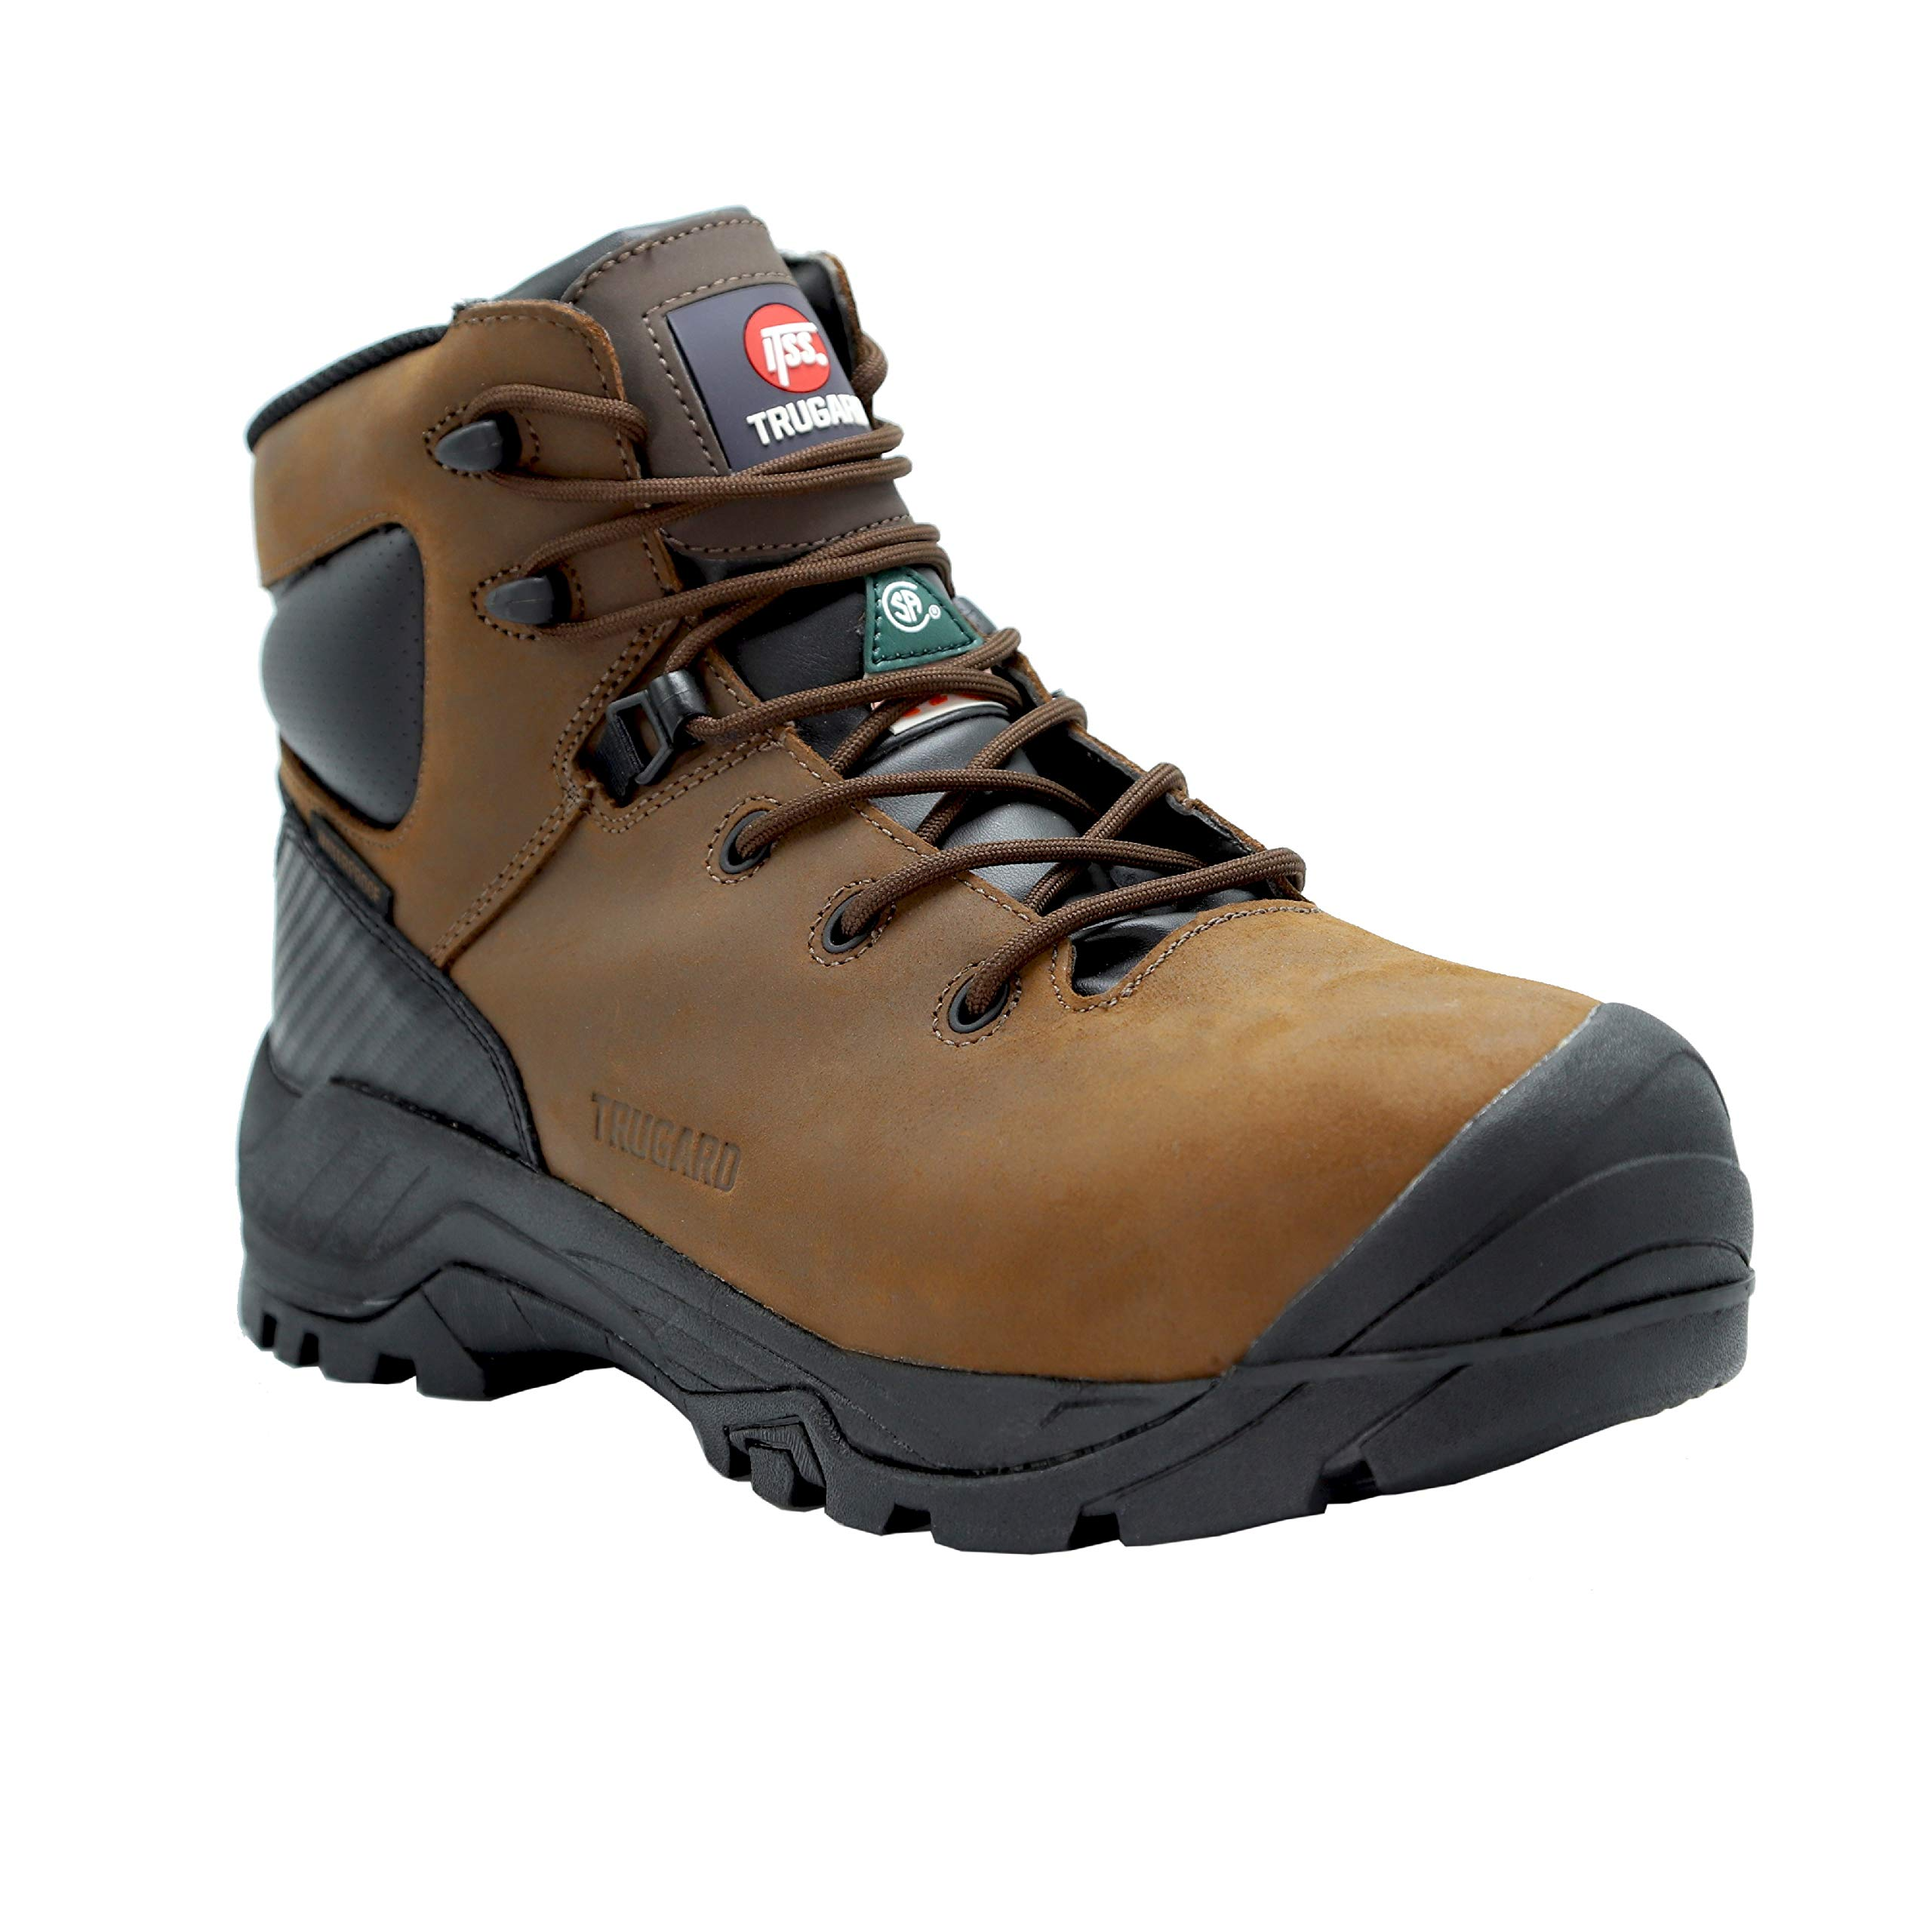 TRUGARD Construction Work Boots B300B (10) Brown